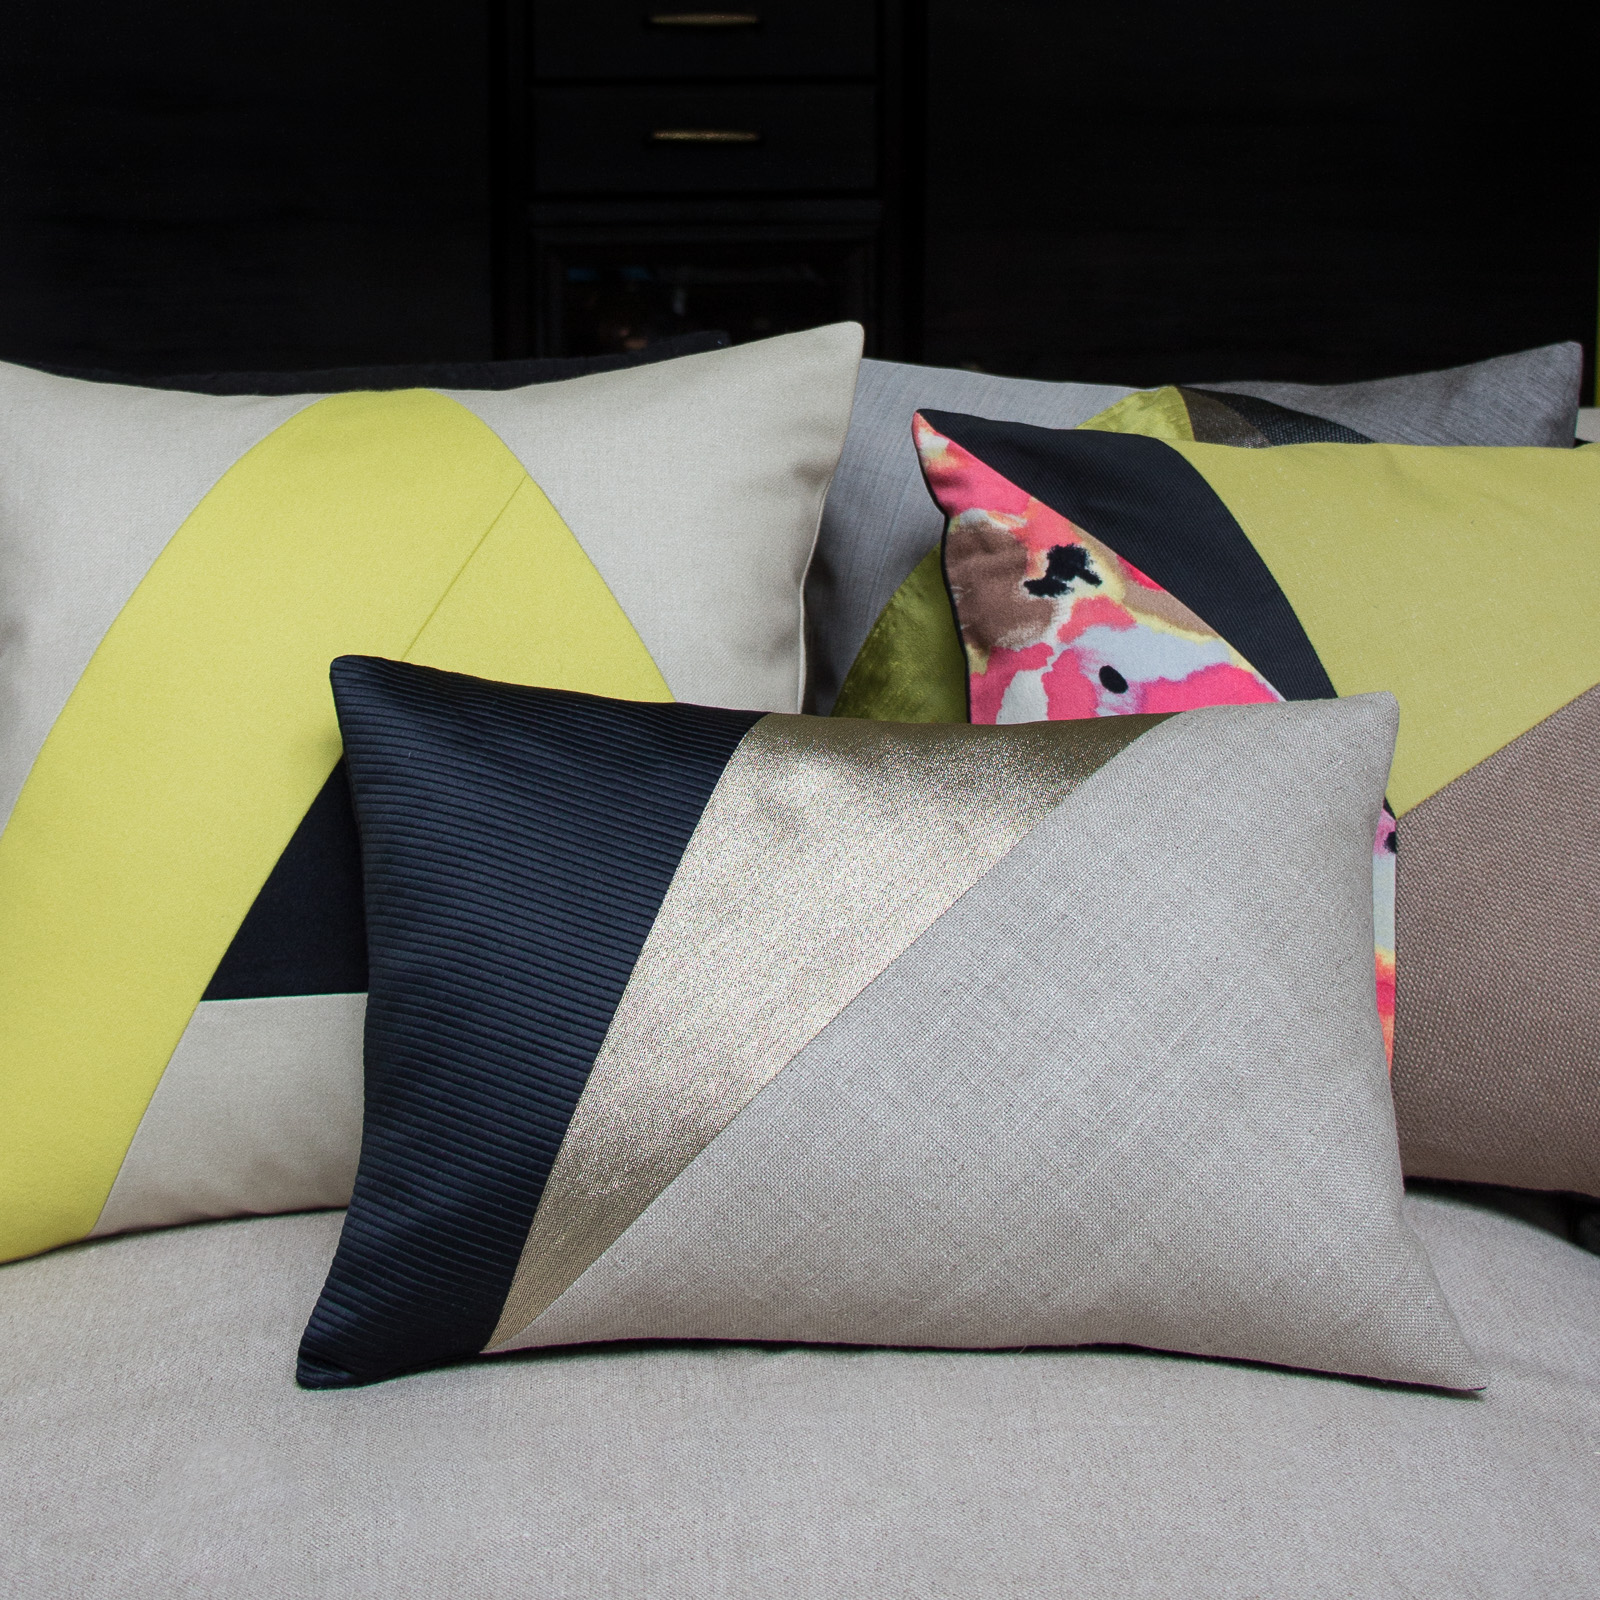 Maison popineau mix and match different cushion sizes for Au maison cushions